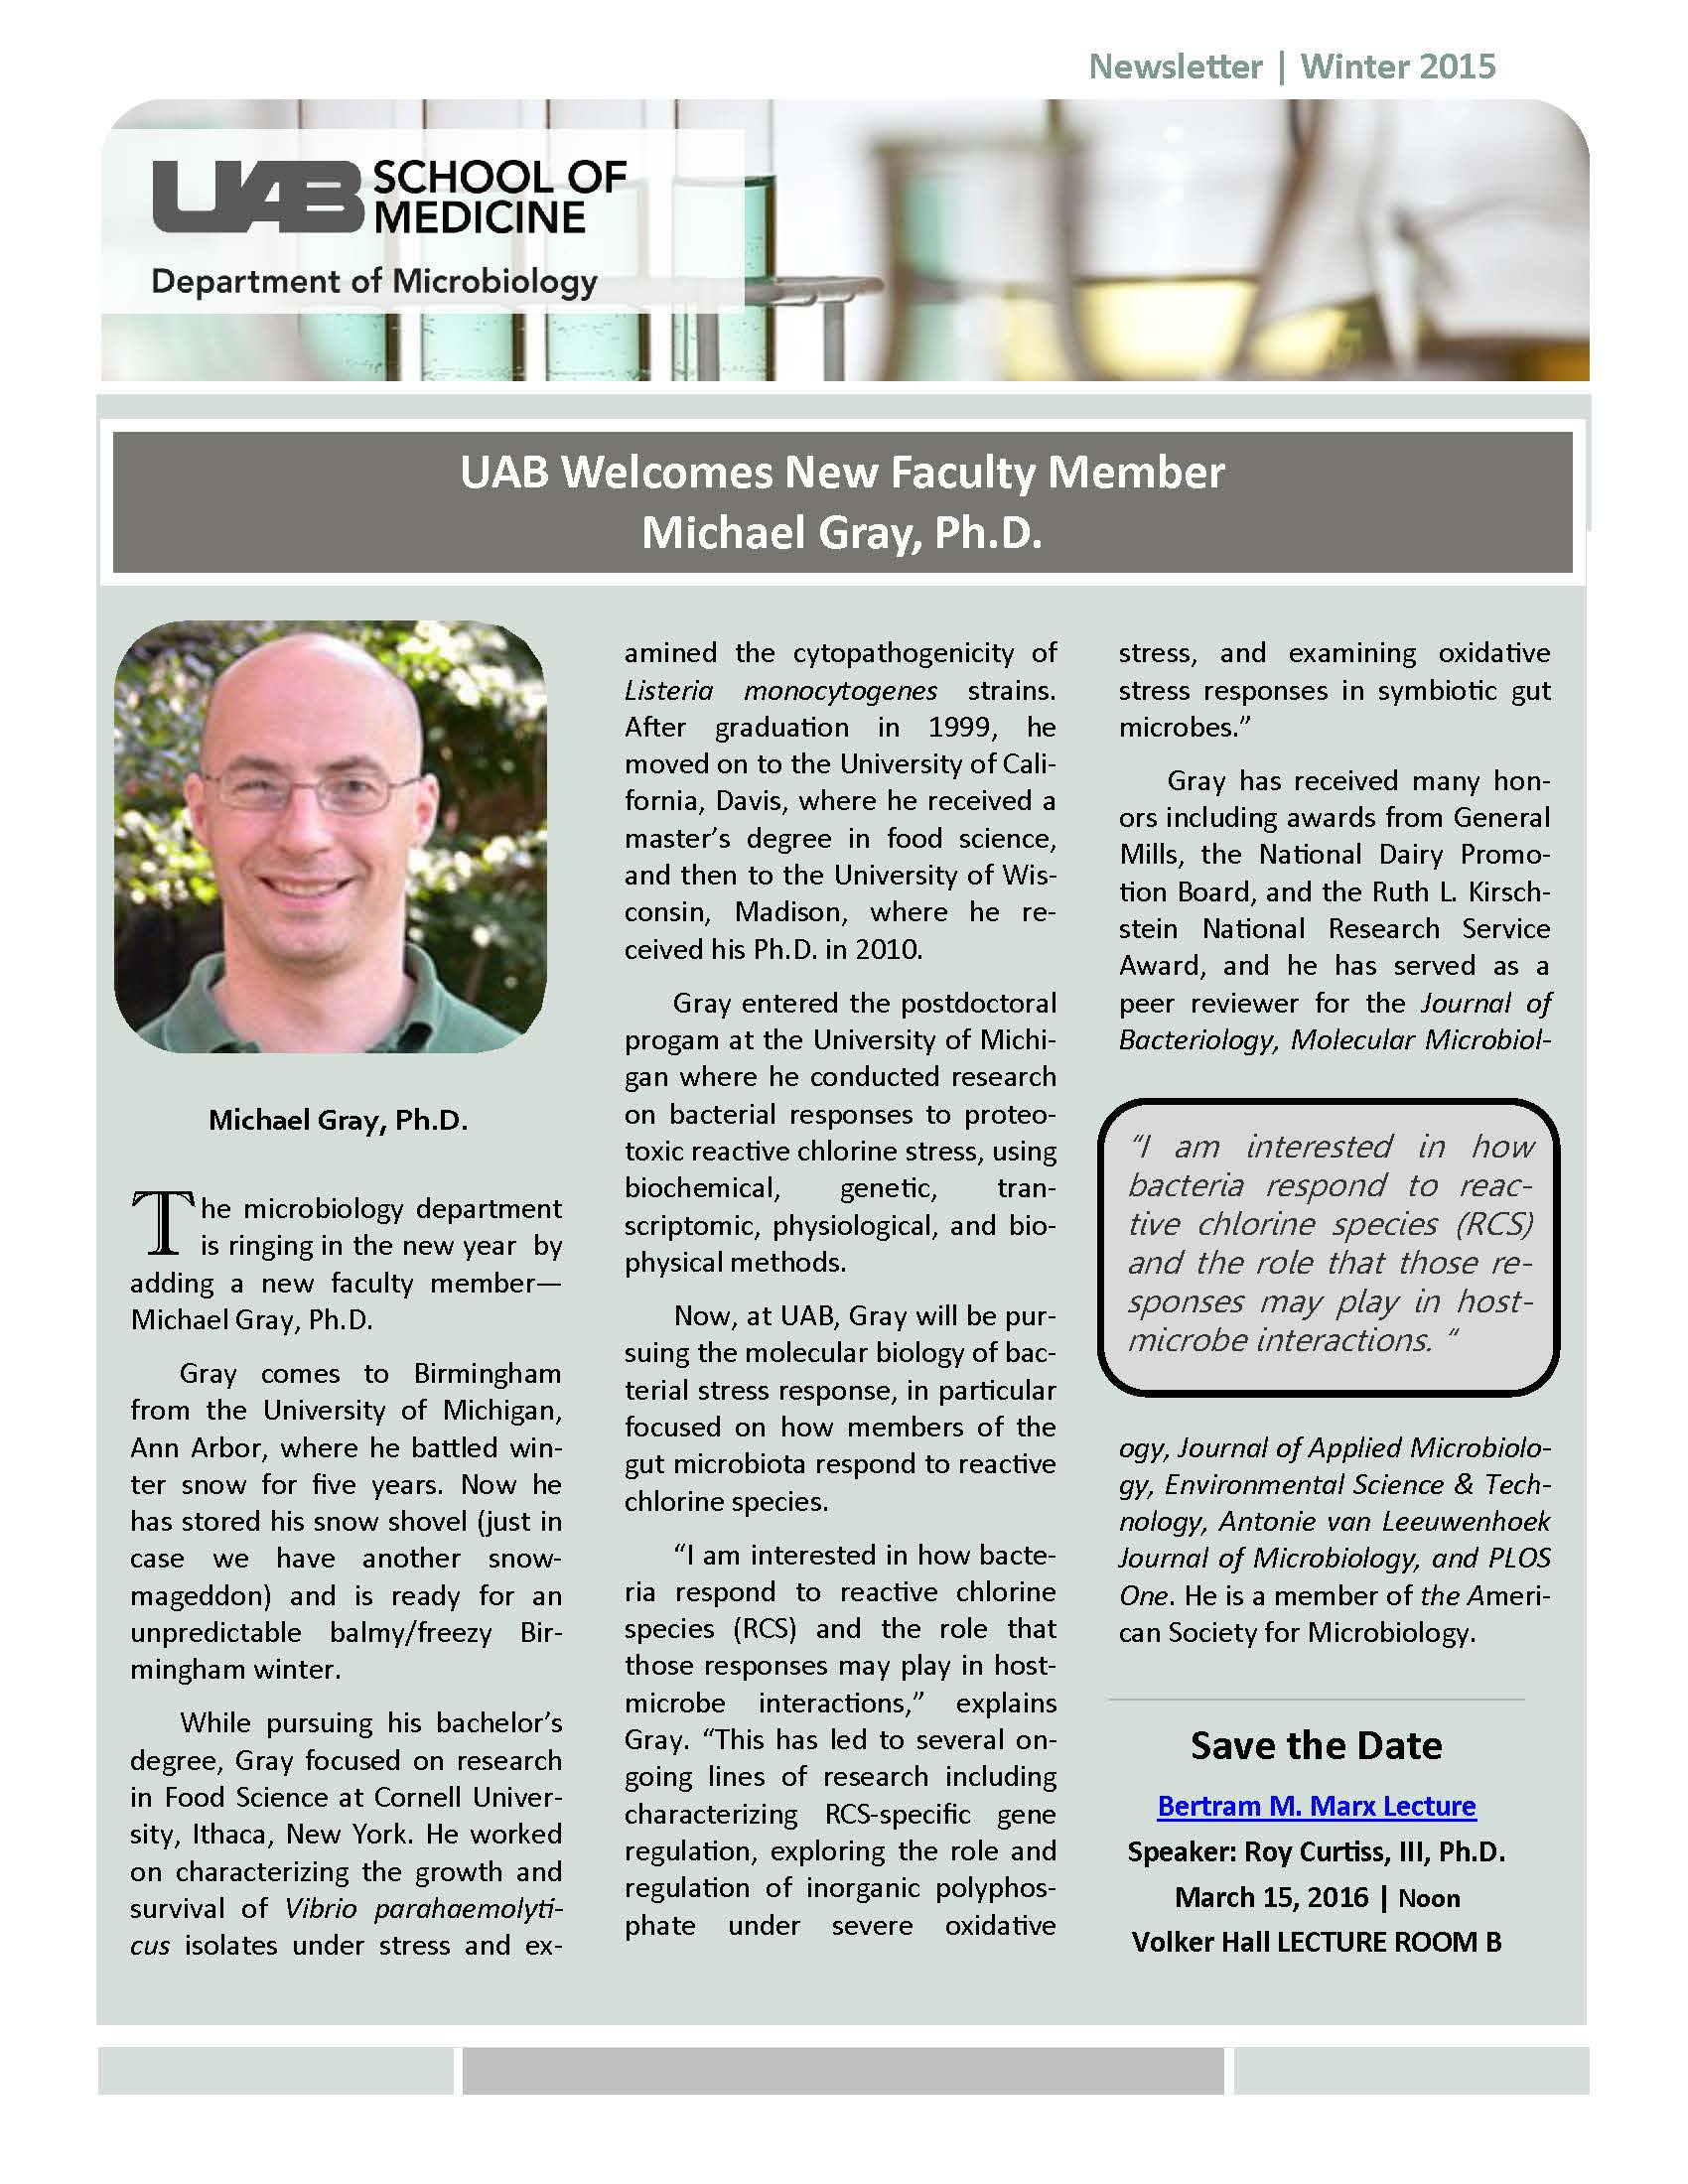 Winter 2015 Microbiology Newsletter Page 01